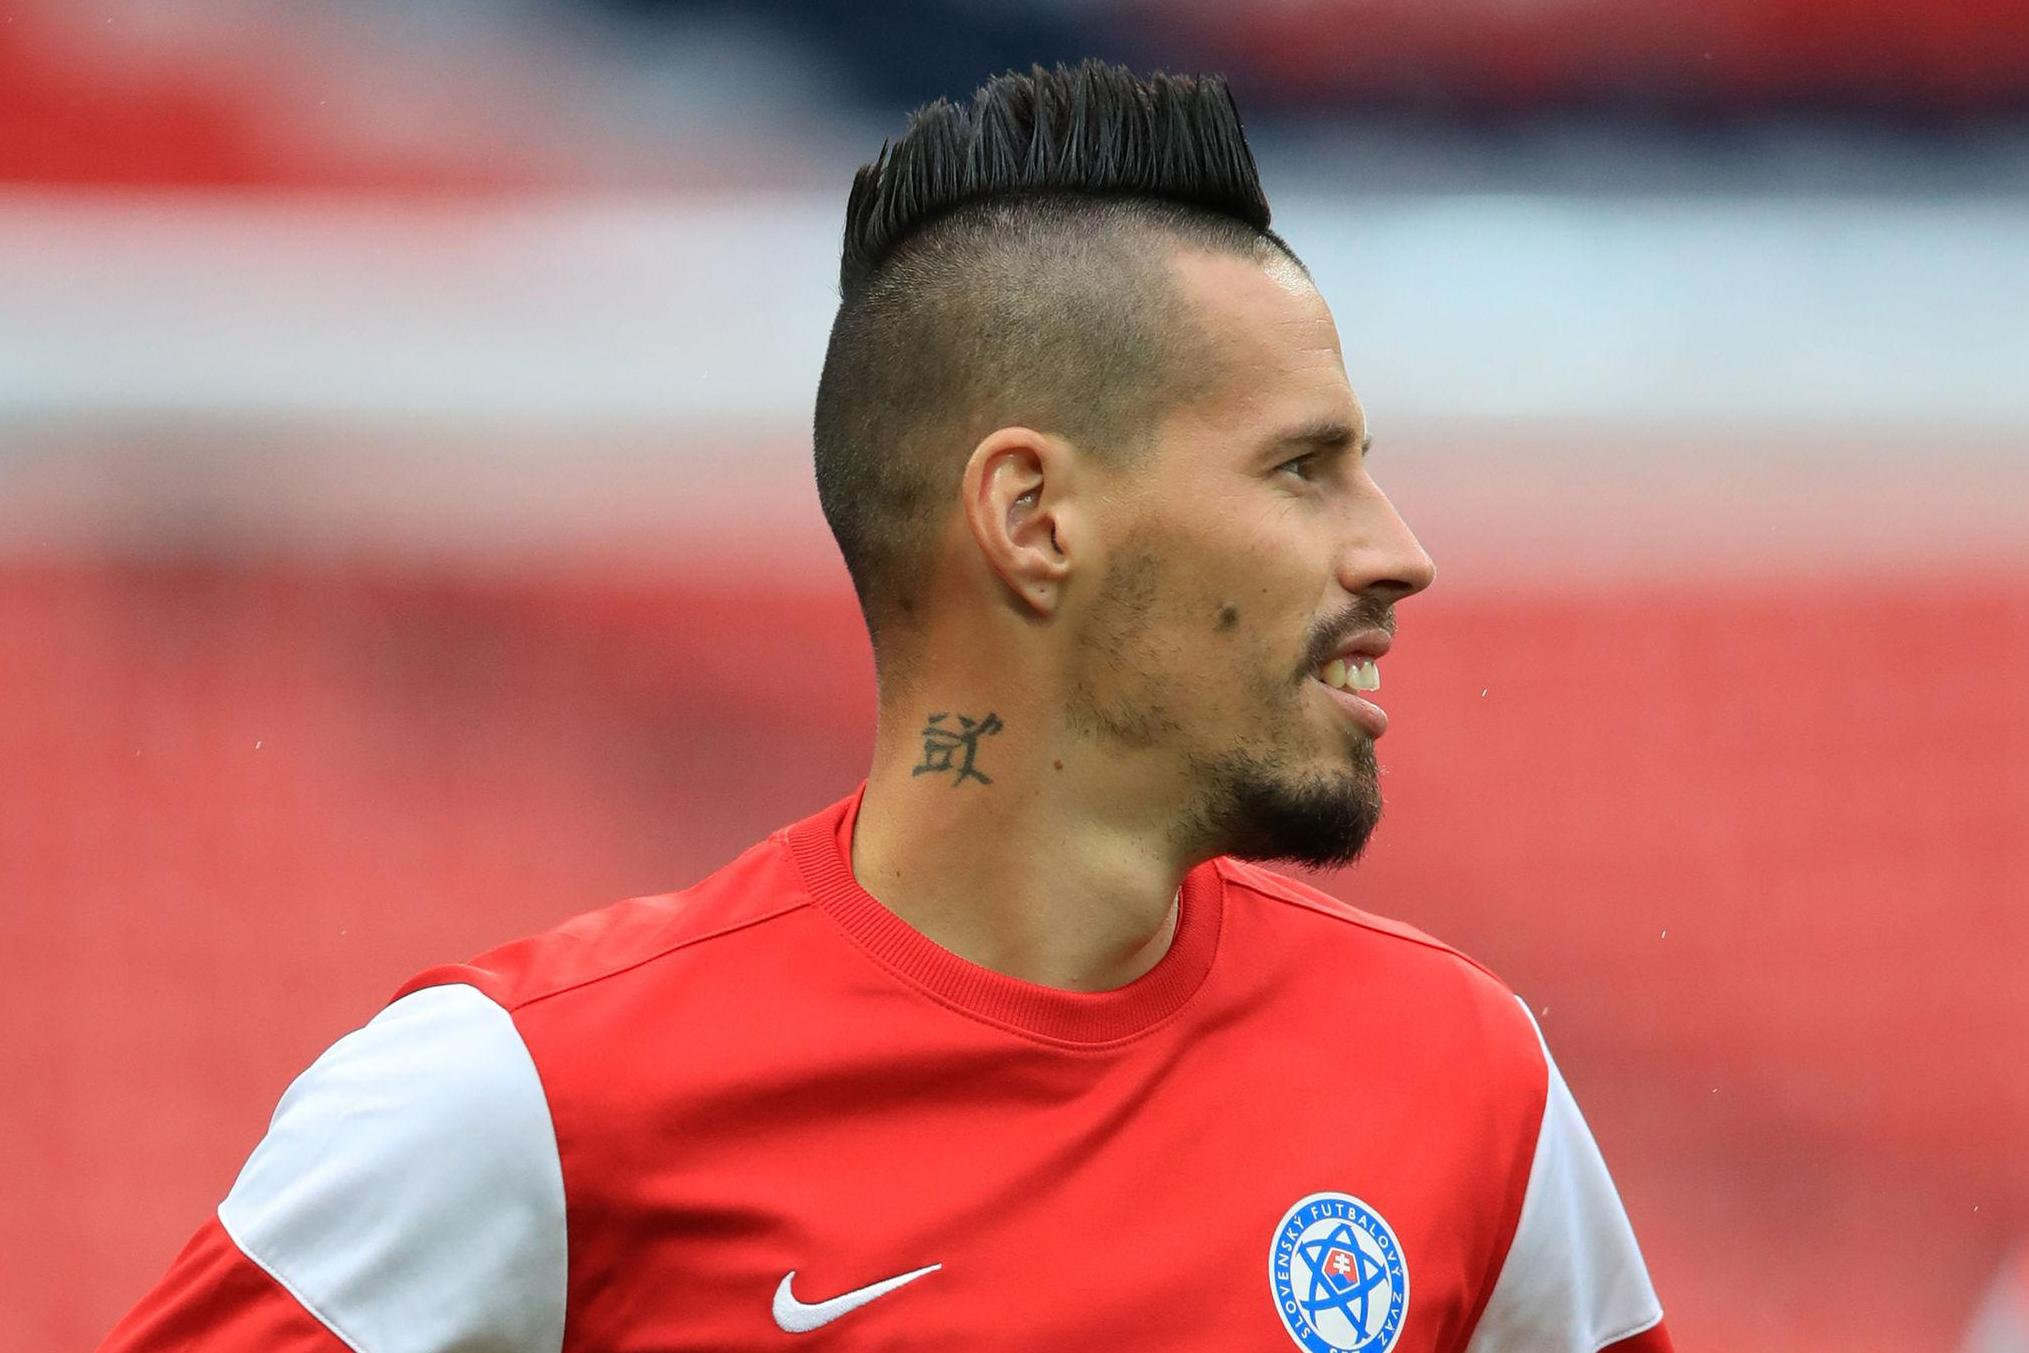 Marek Hamsik All the latest news and rumours The Sun